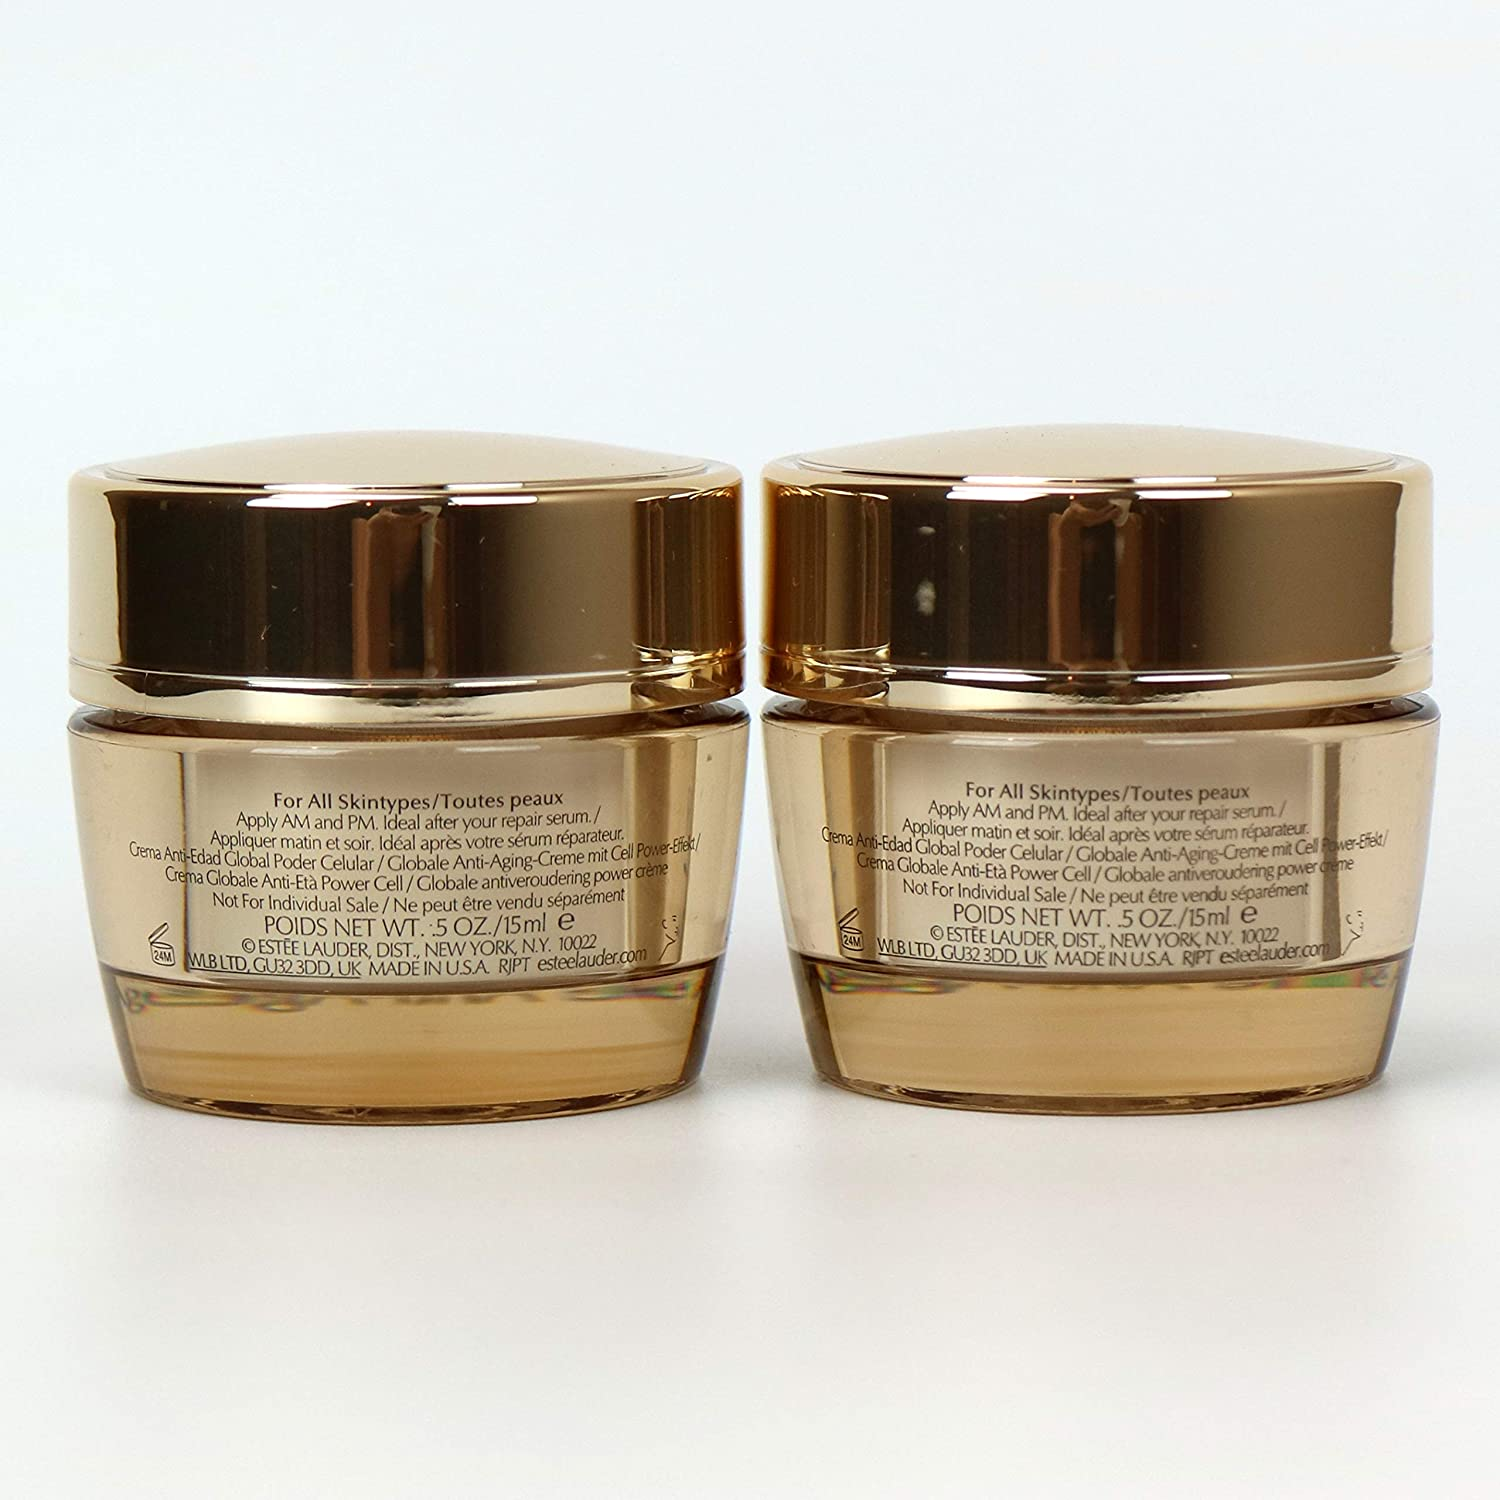 Lot 2 x Estee Lauder Revitalizing Supreme Global Anti-Aging Cell Power Creme 0.5 oz 15 ml each, 1 oz 30 ml total